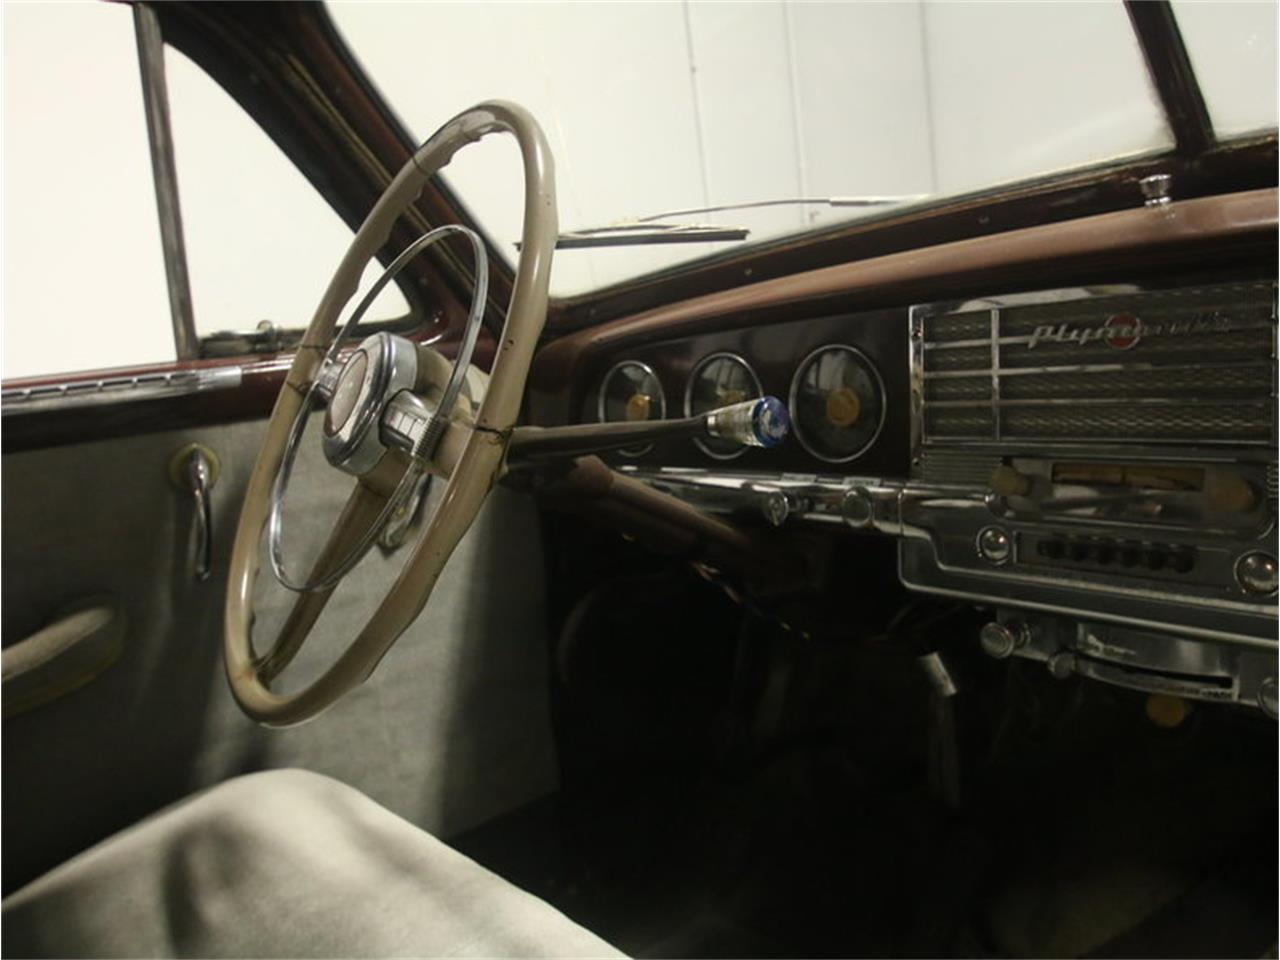 Large Picture of Classic '49 Plymouth Special Deluxe - $8,995.00 Offered by Streetside Classics - Atlanta - L551